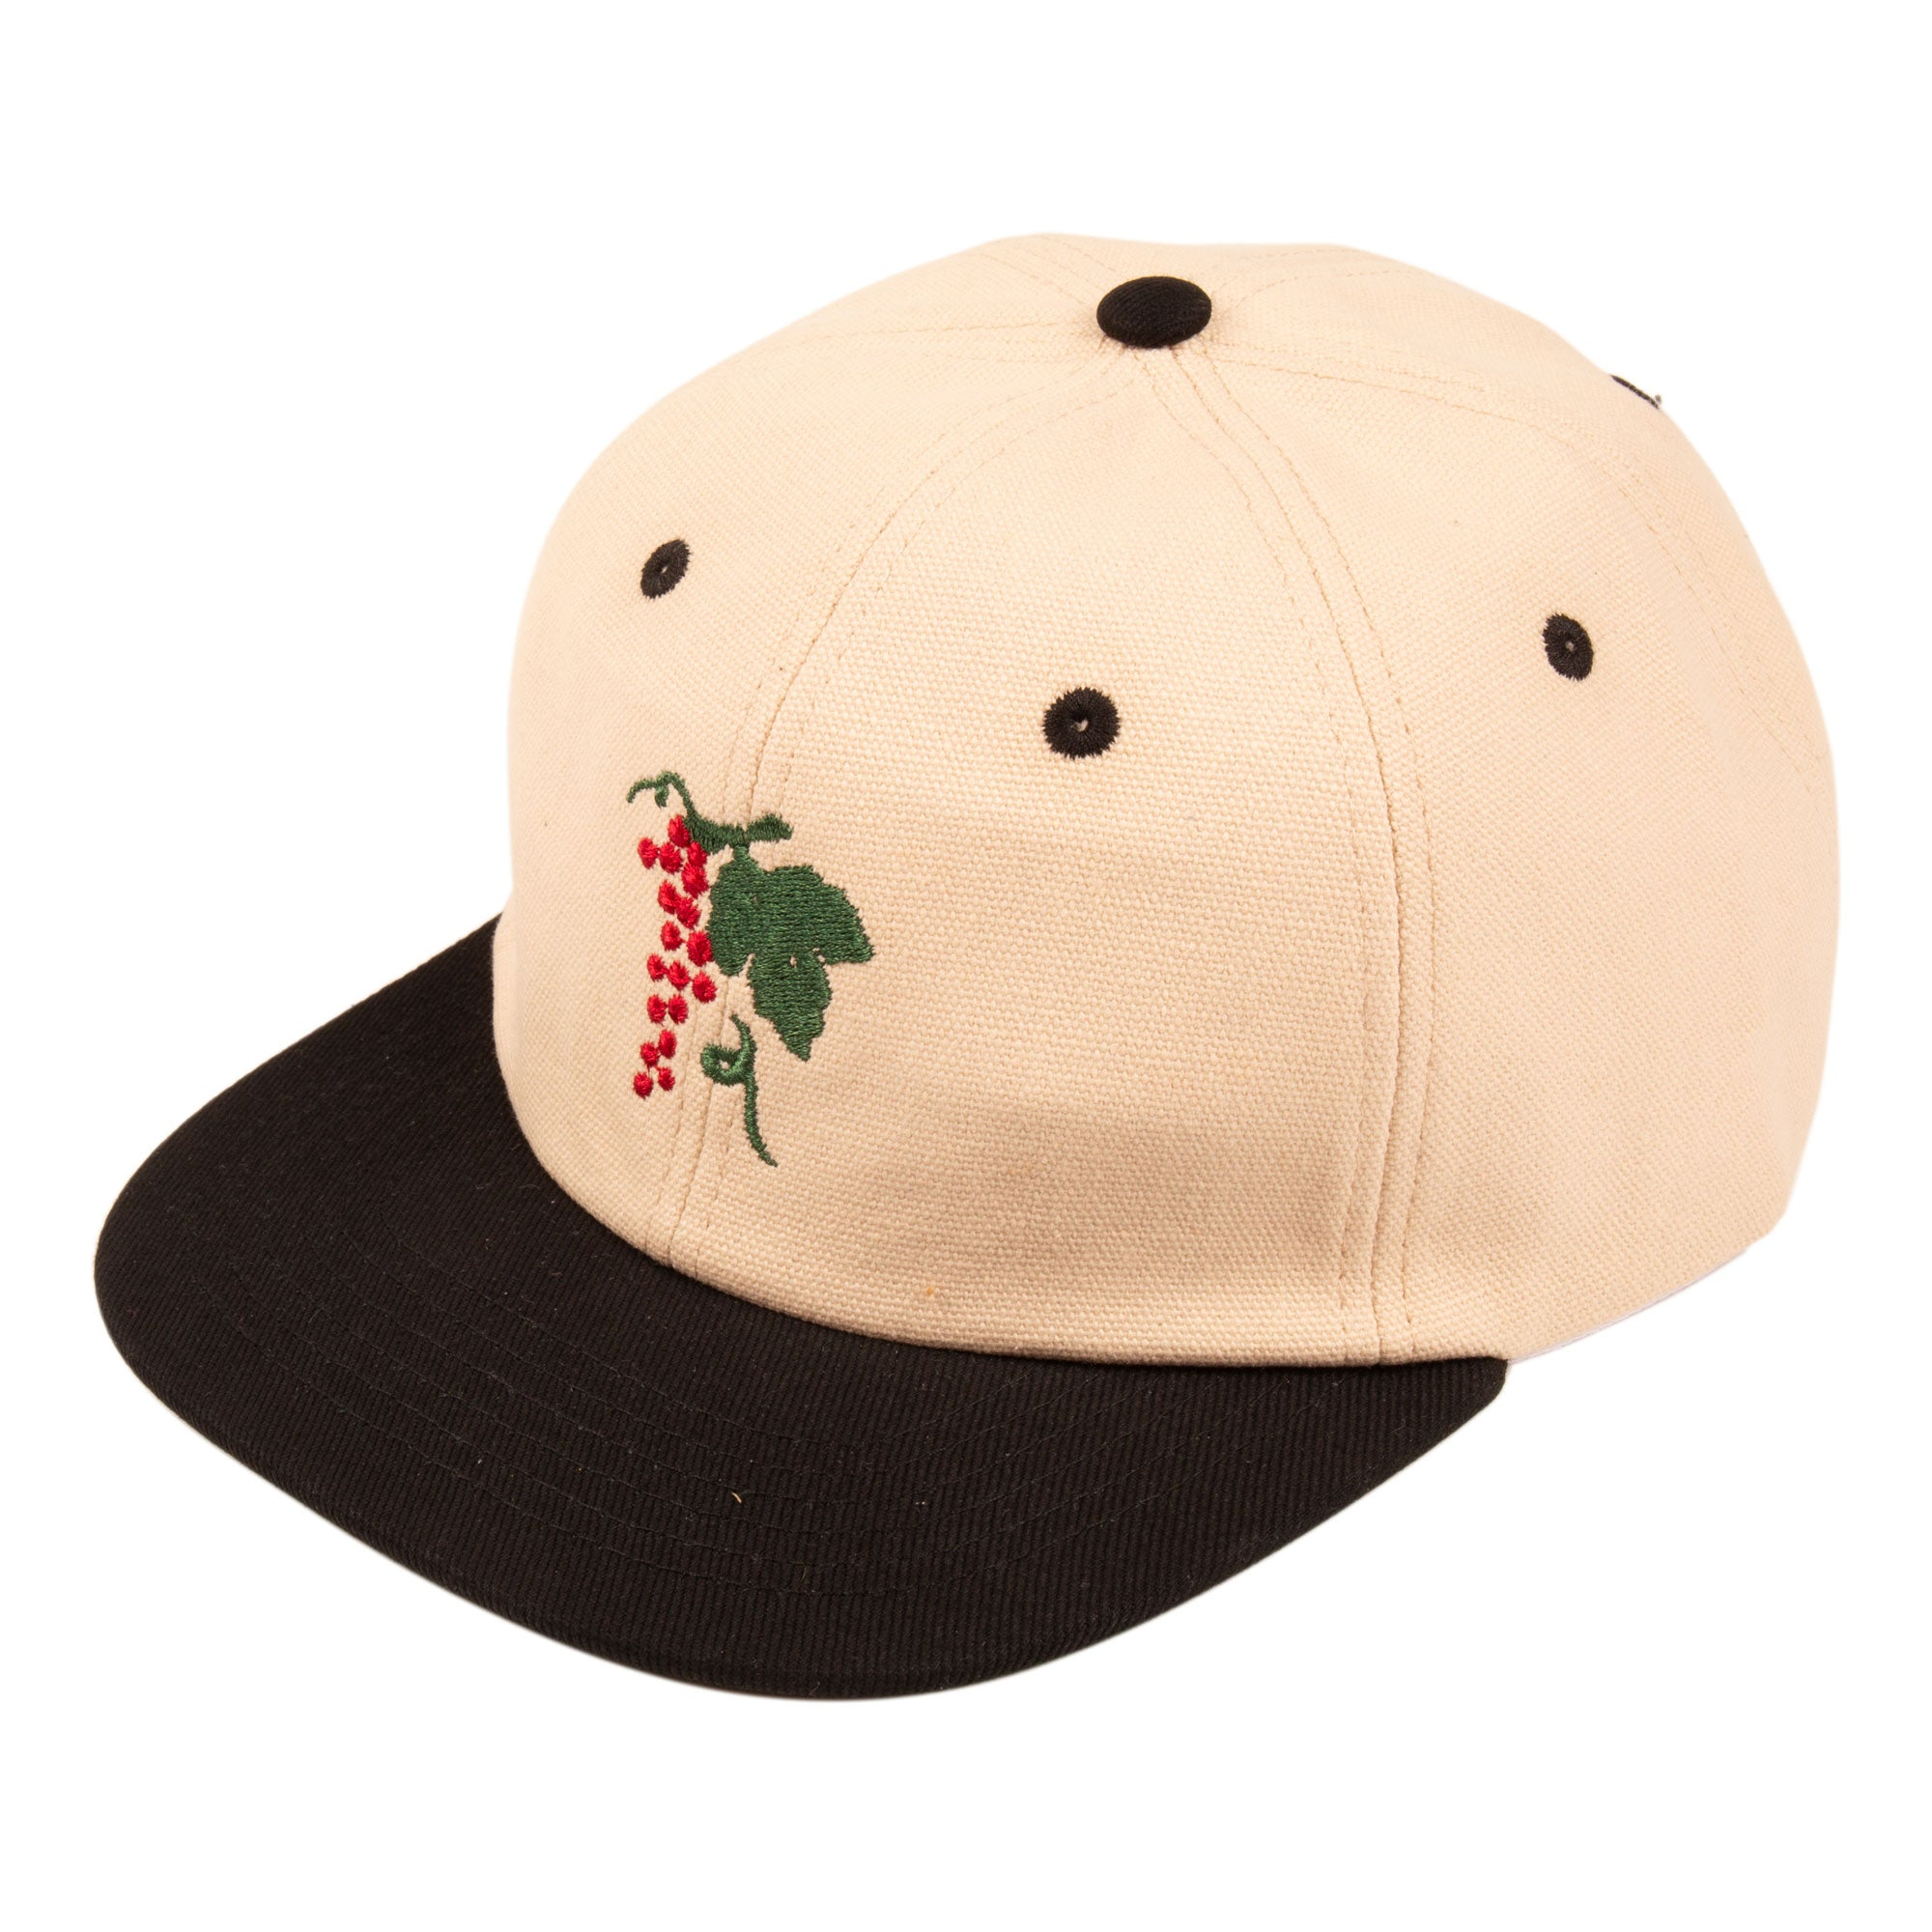 Passport Life Of Leisure 6 Panel Cap Product Photo #1